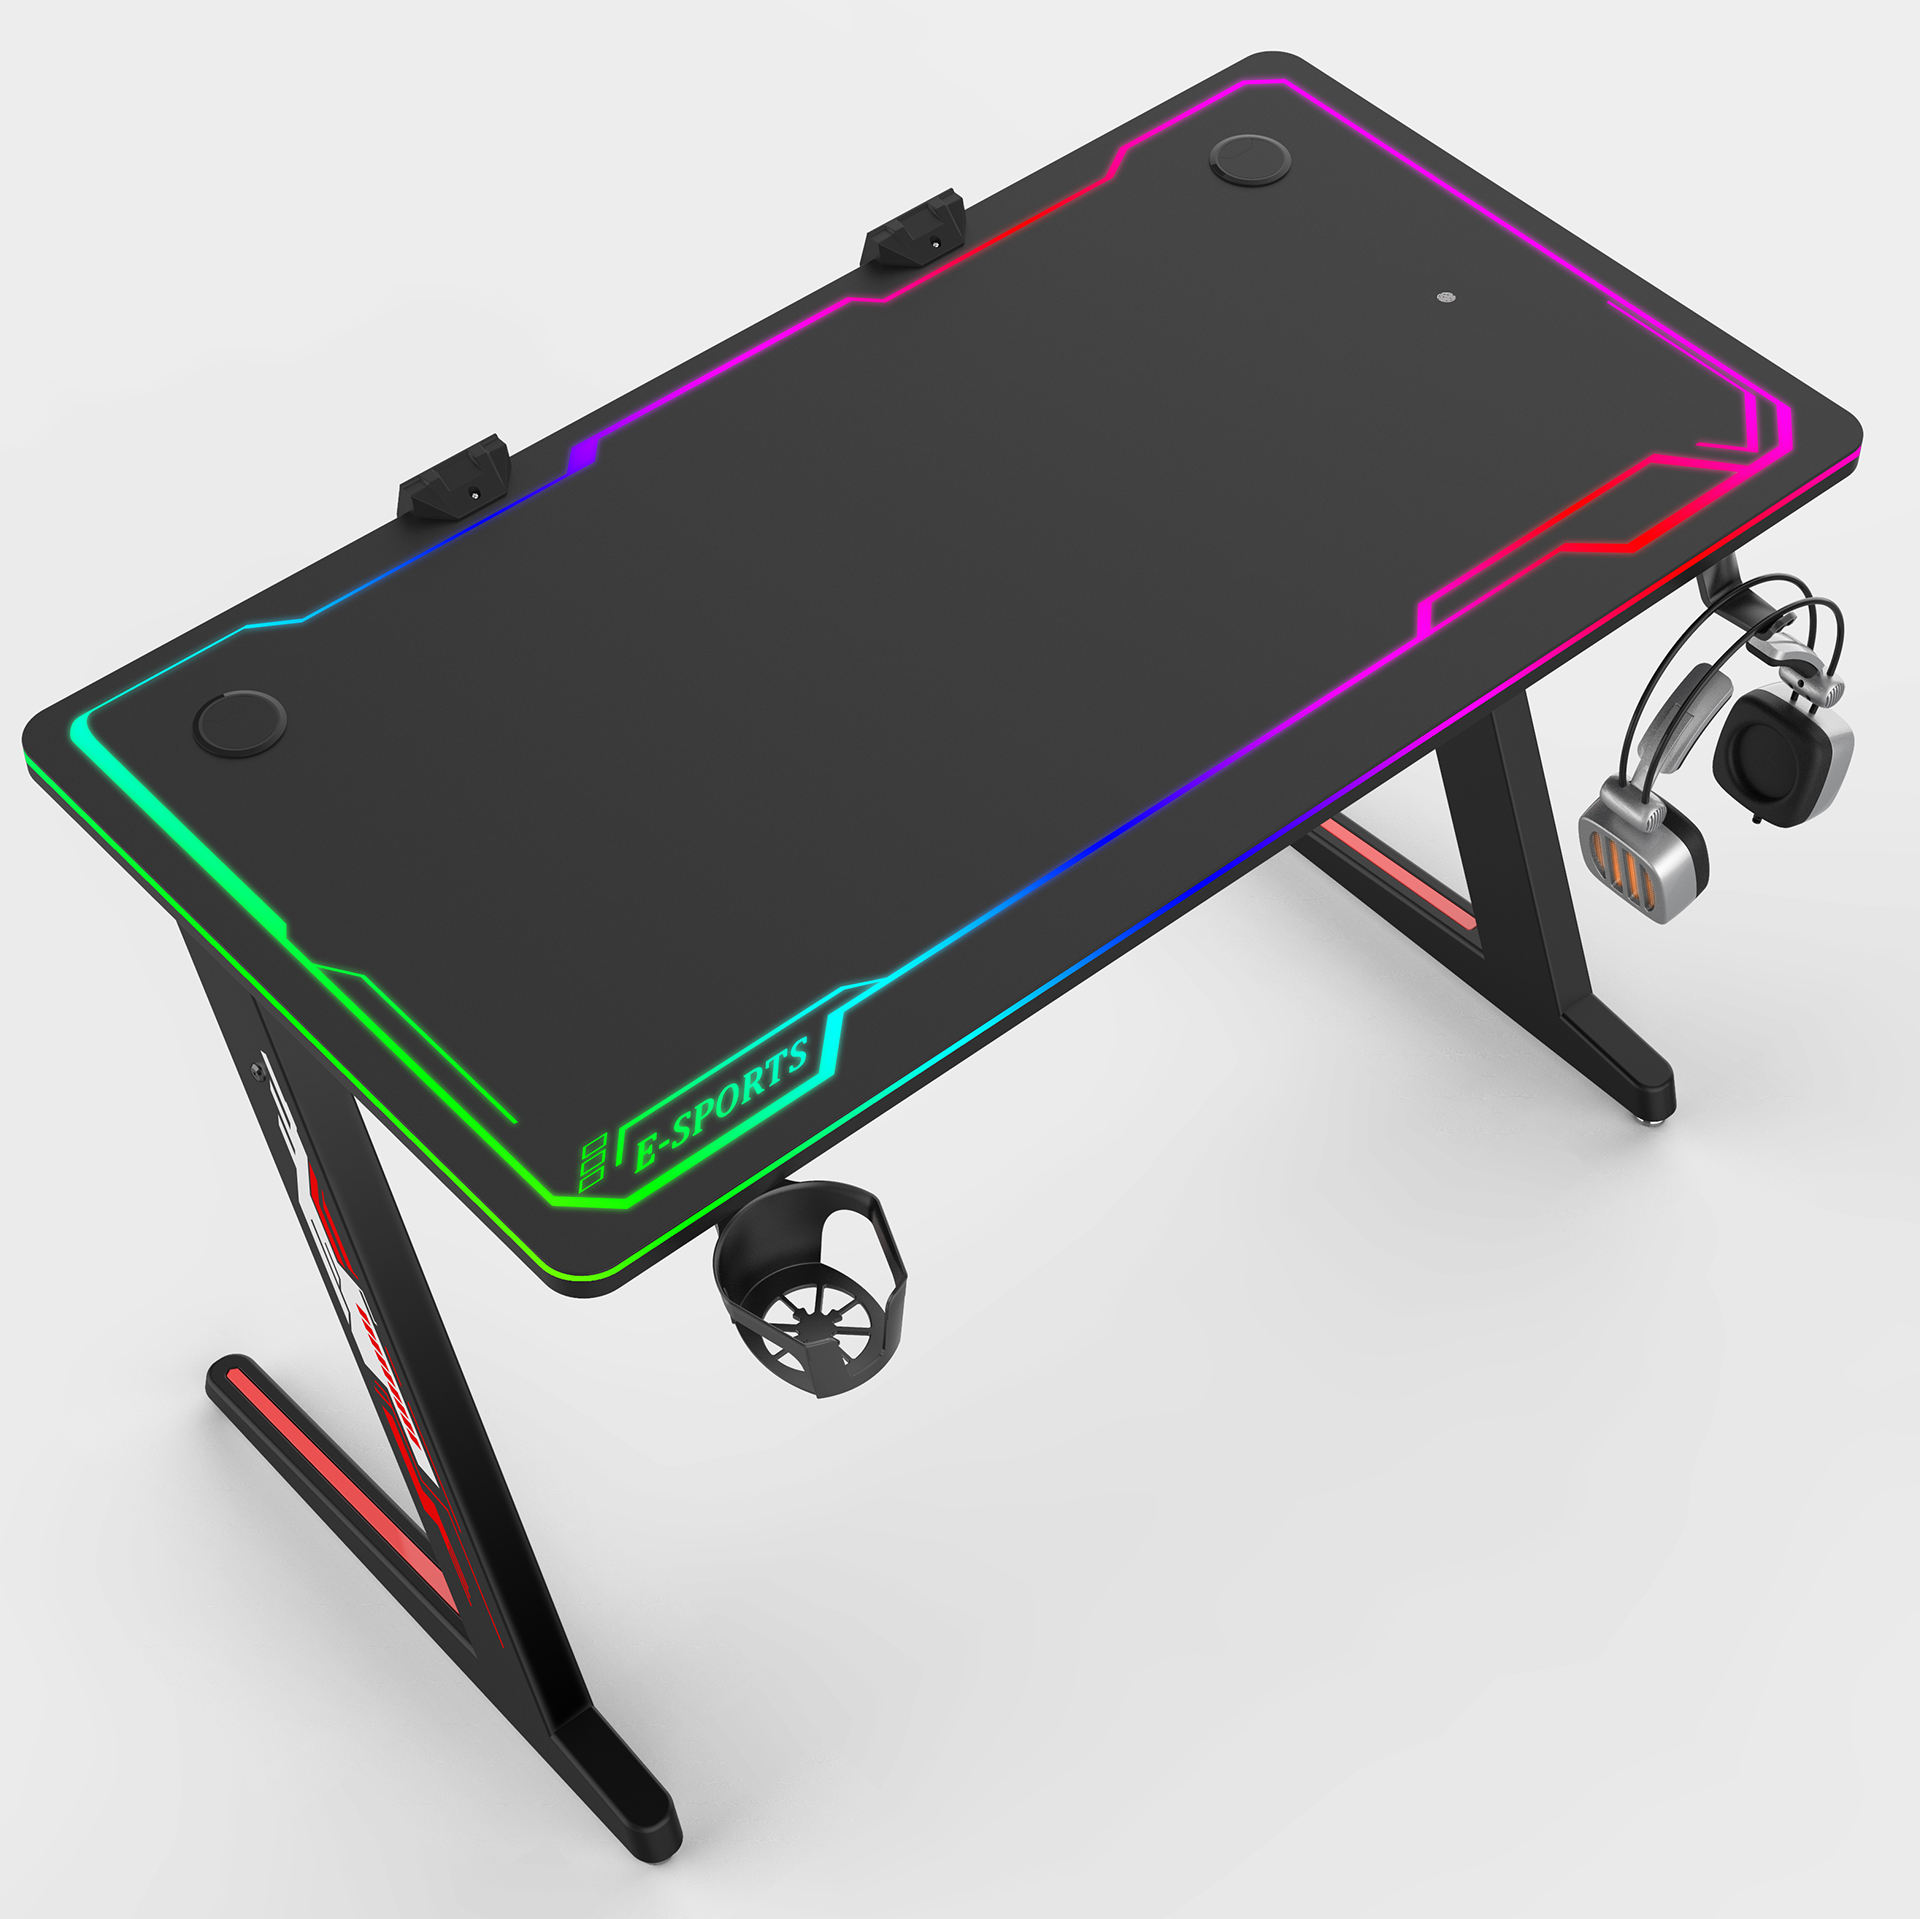 PC style game desk with touching swift RGB light racing gaming table